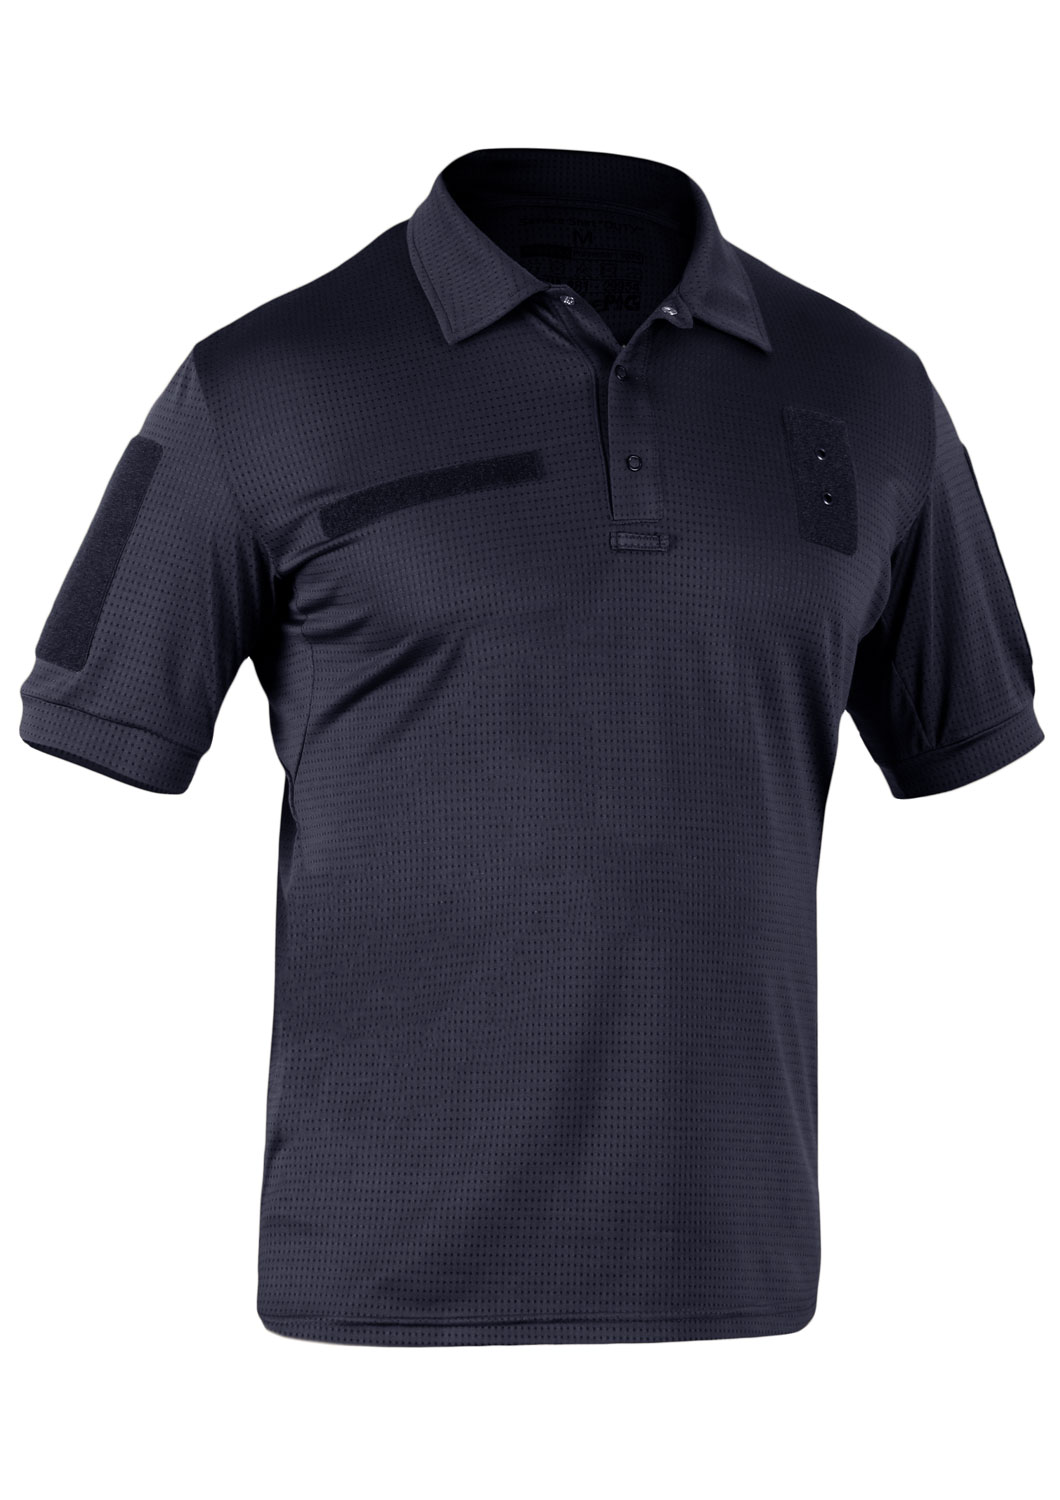 Short Sleeve Service Shirt